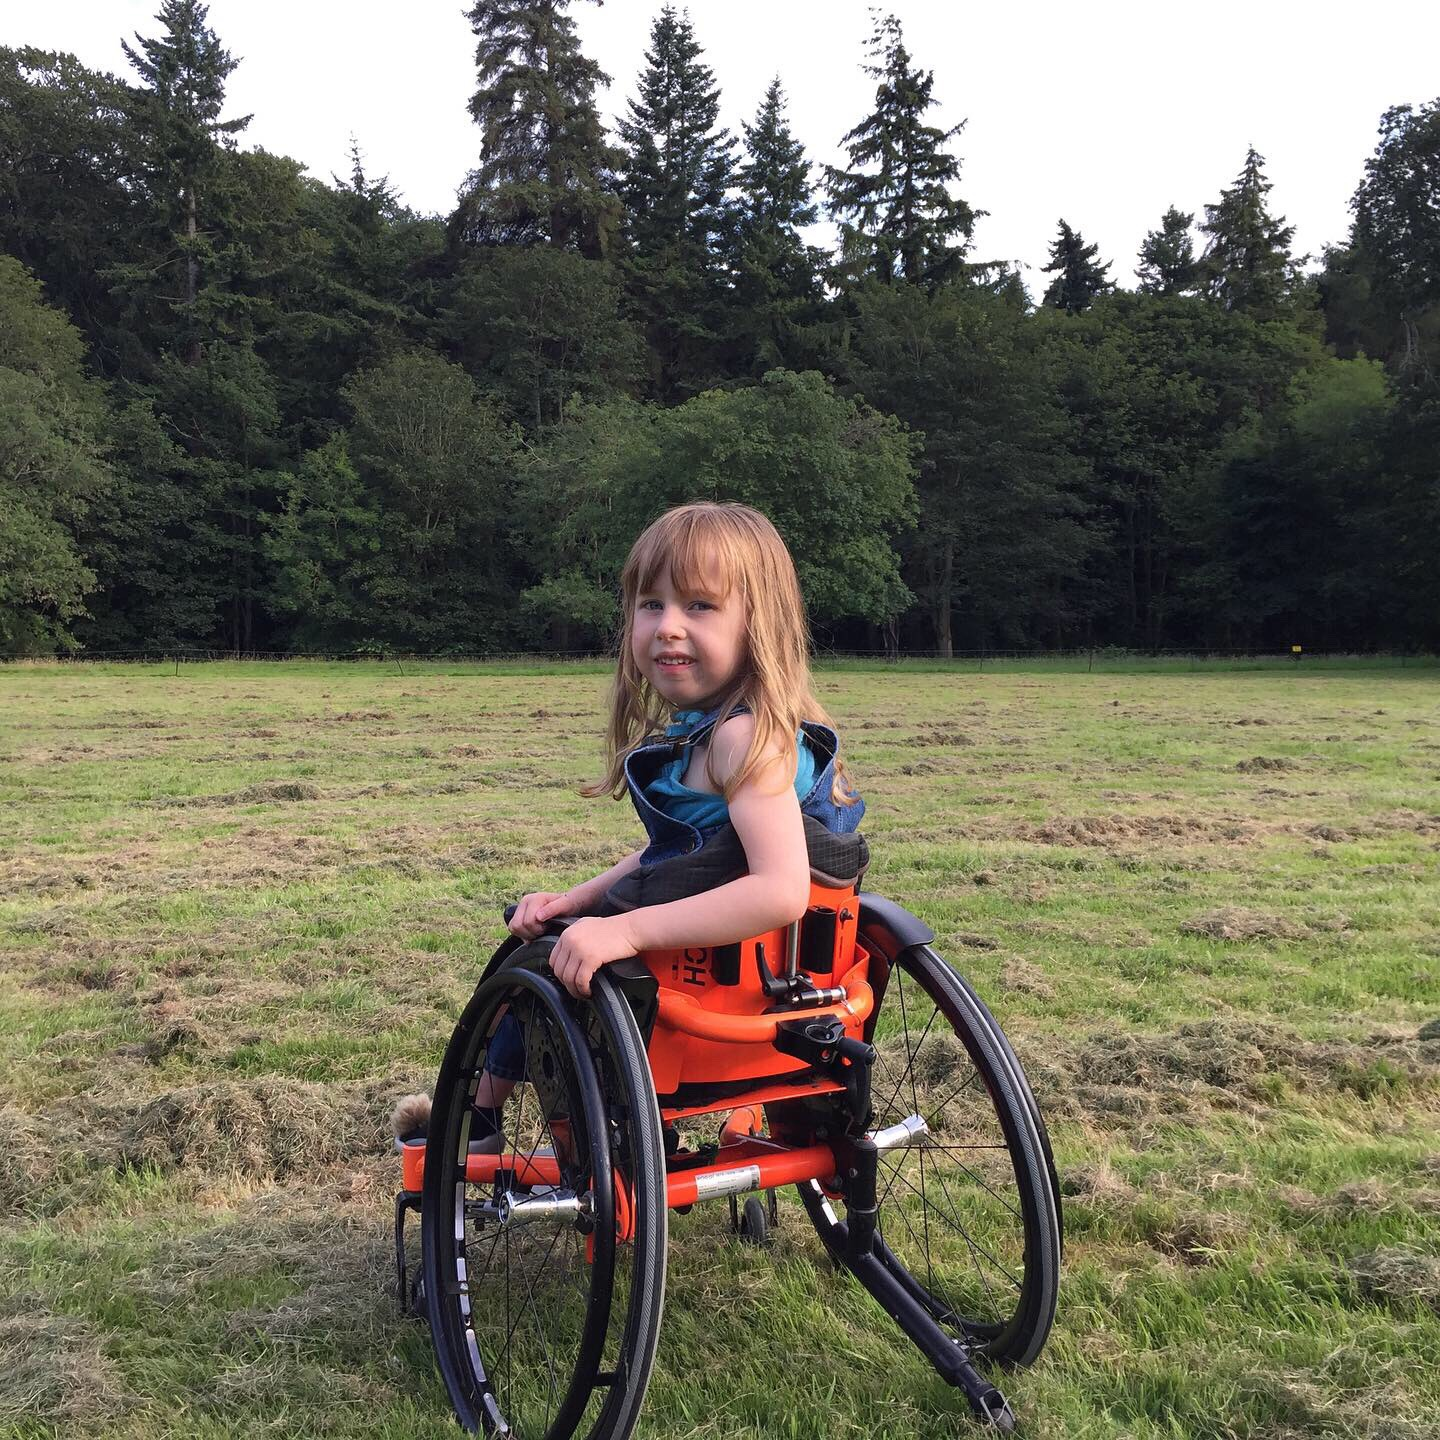 Eudora, a little girl with dirty blond hair, is in a grassy field sitting in her wheelchair looking over her shoulder at the camera.